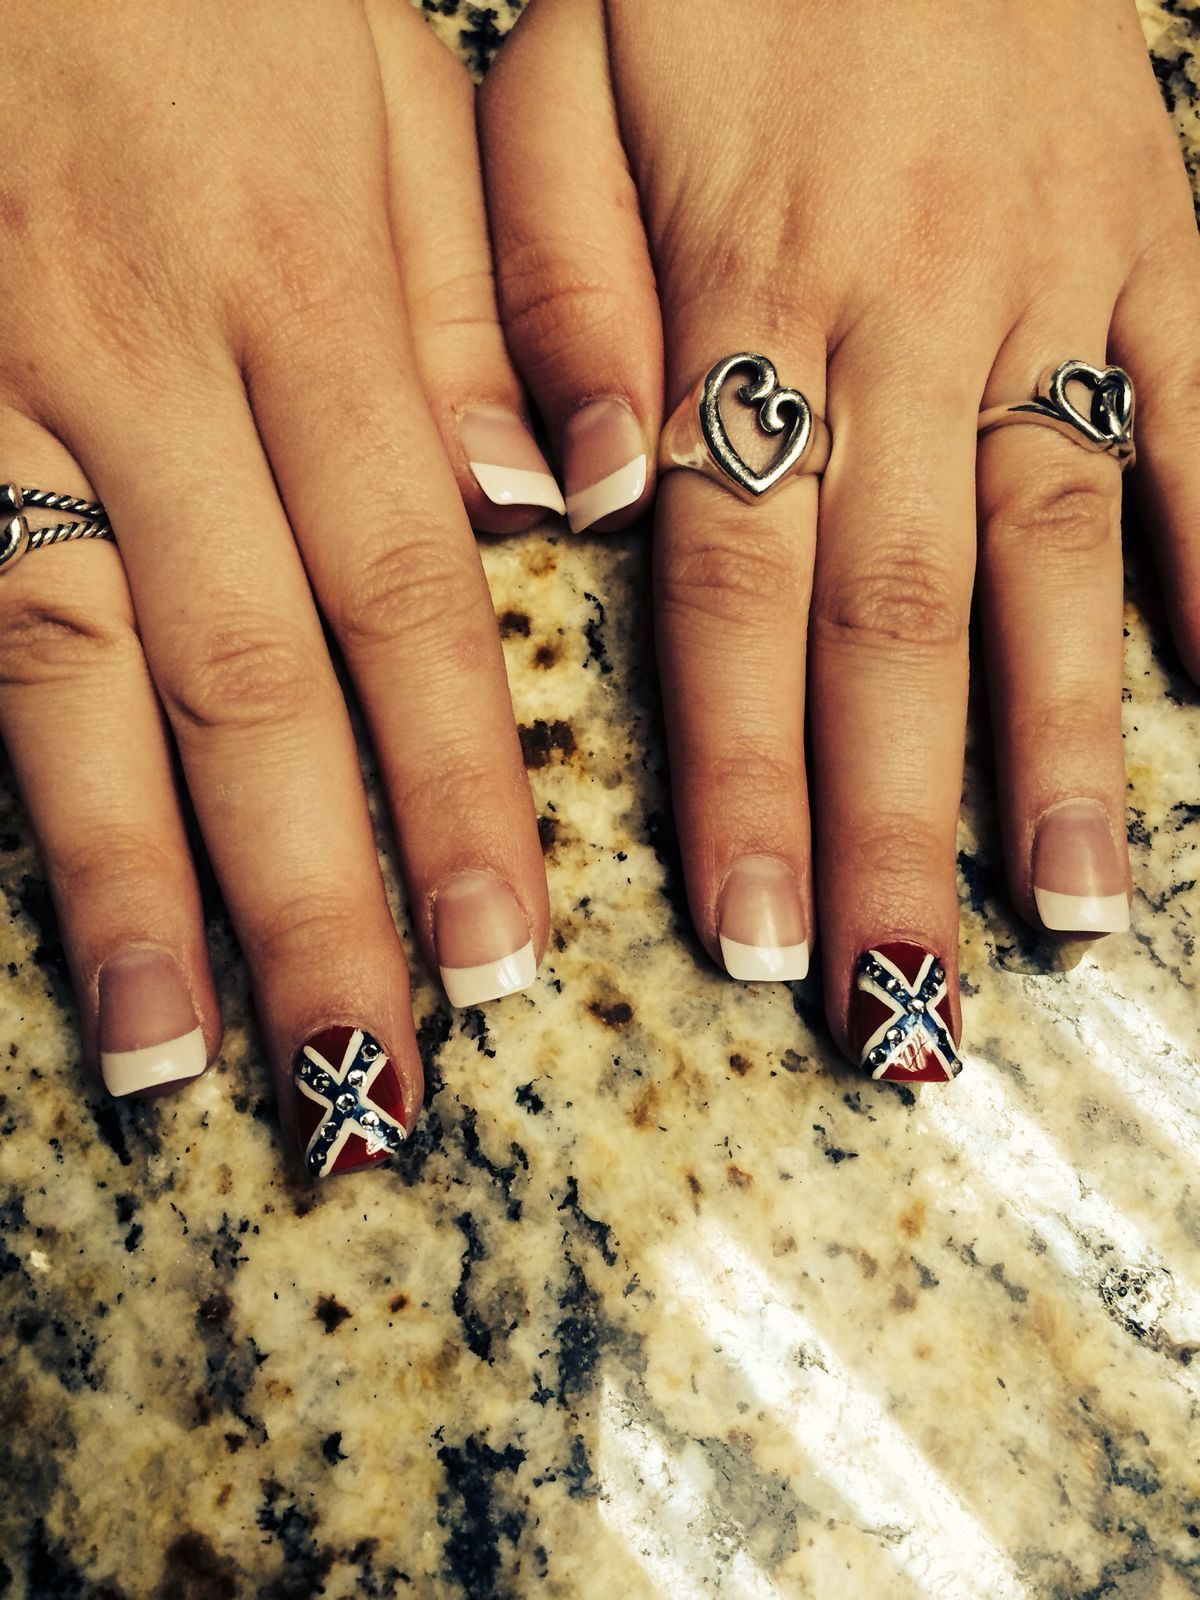 My rebel flag nails! - 92ad3d2a9283c7577ae9321a47fbf930.jpg 1,200×1,600 Pixels Nails